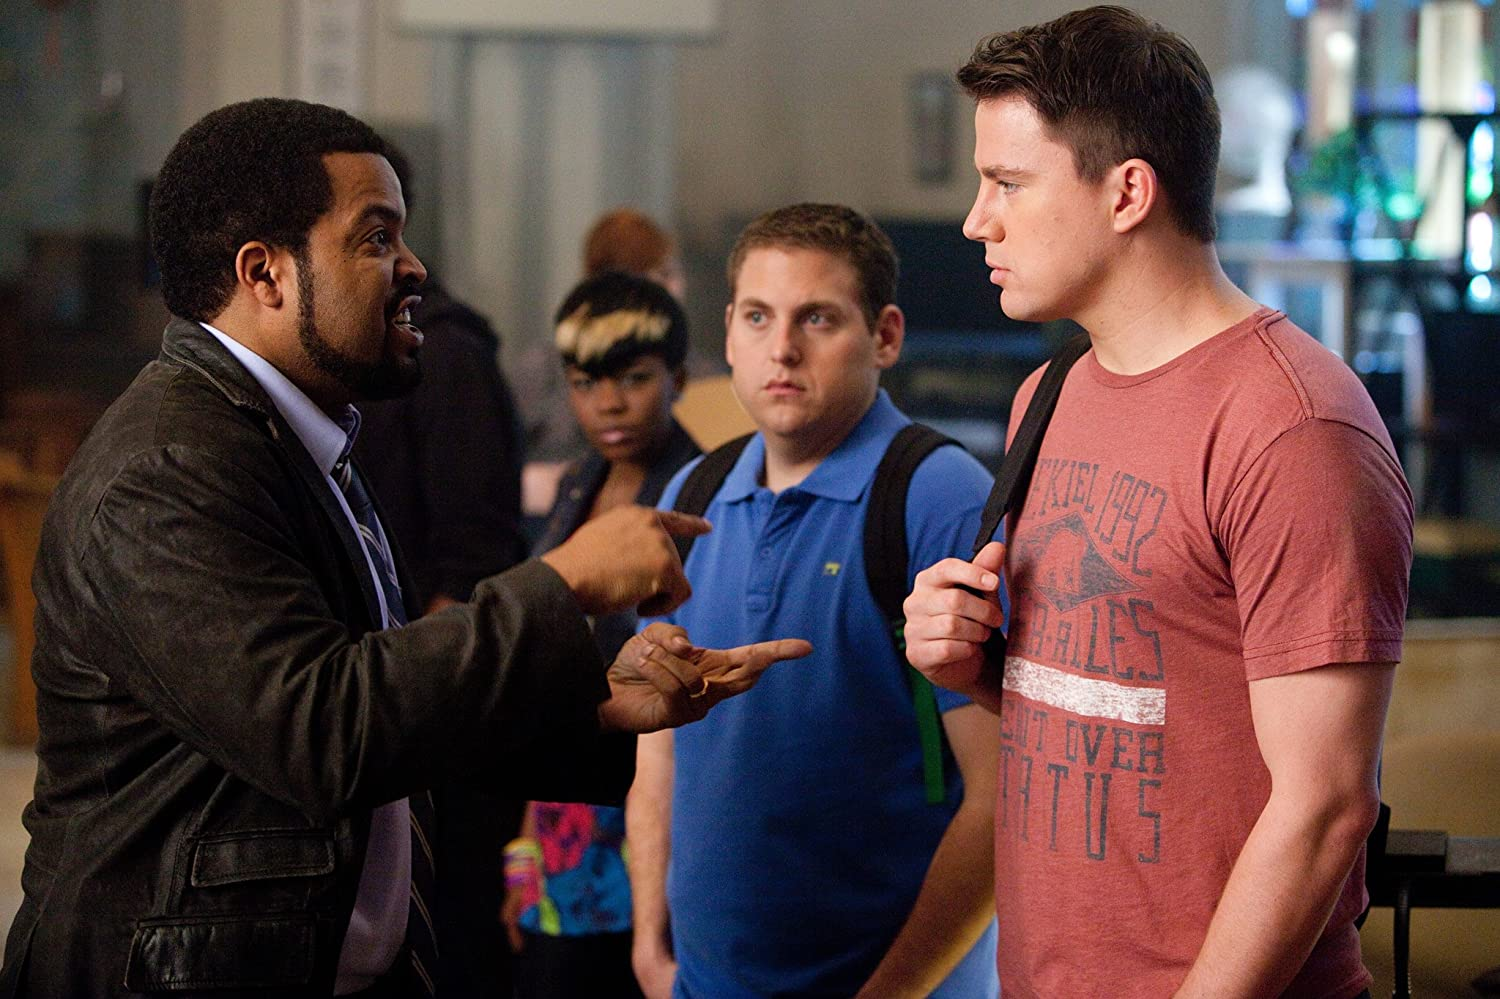 Ice Cube, Channing Tatum, and Jonah Hill in 21 Jump Street (2012)